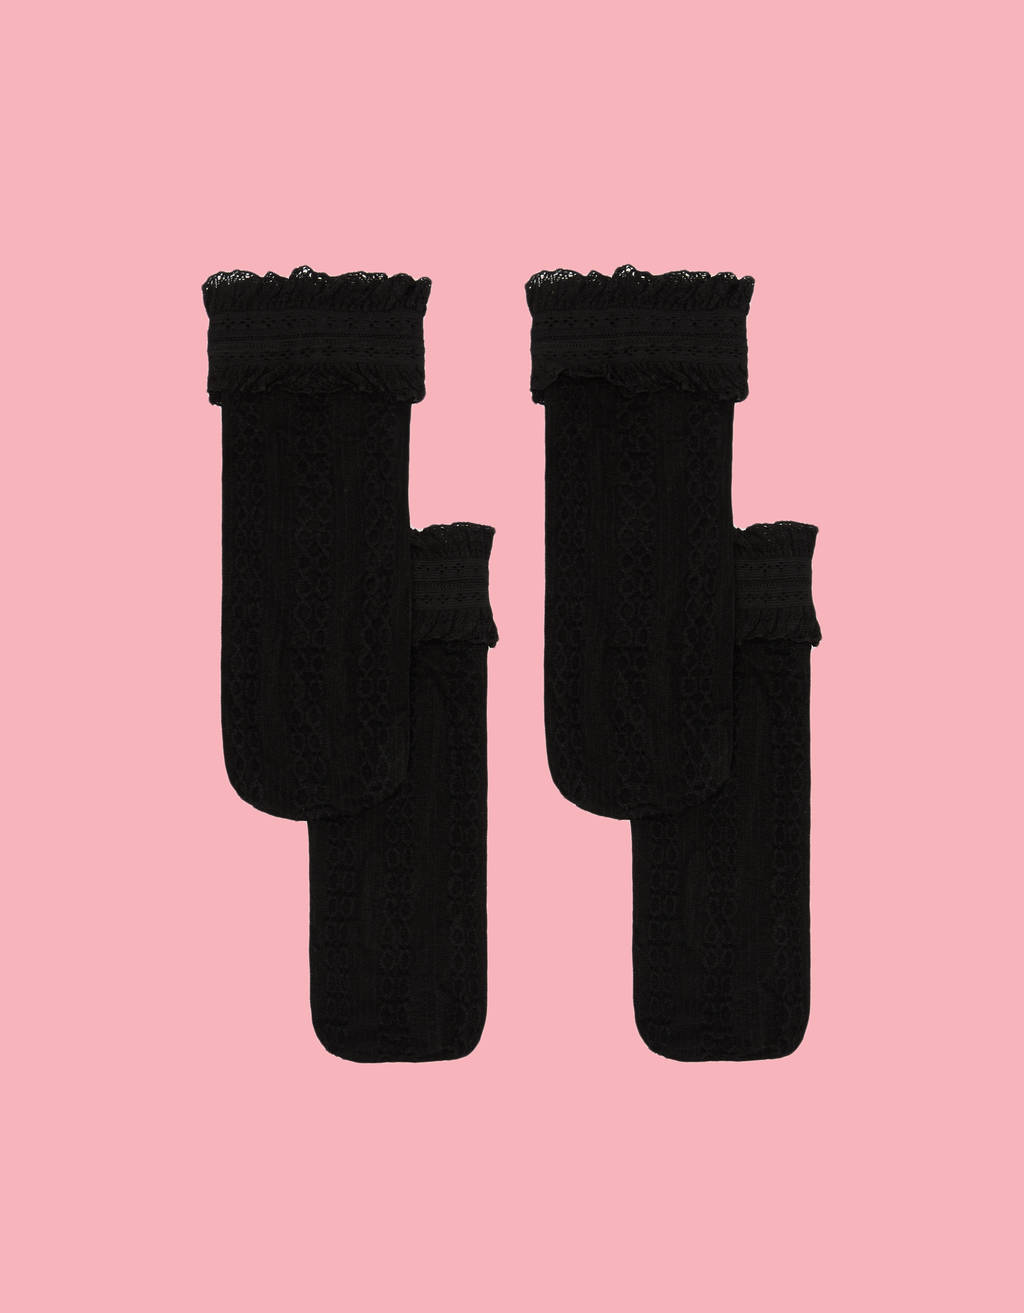 Set of socks